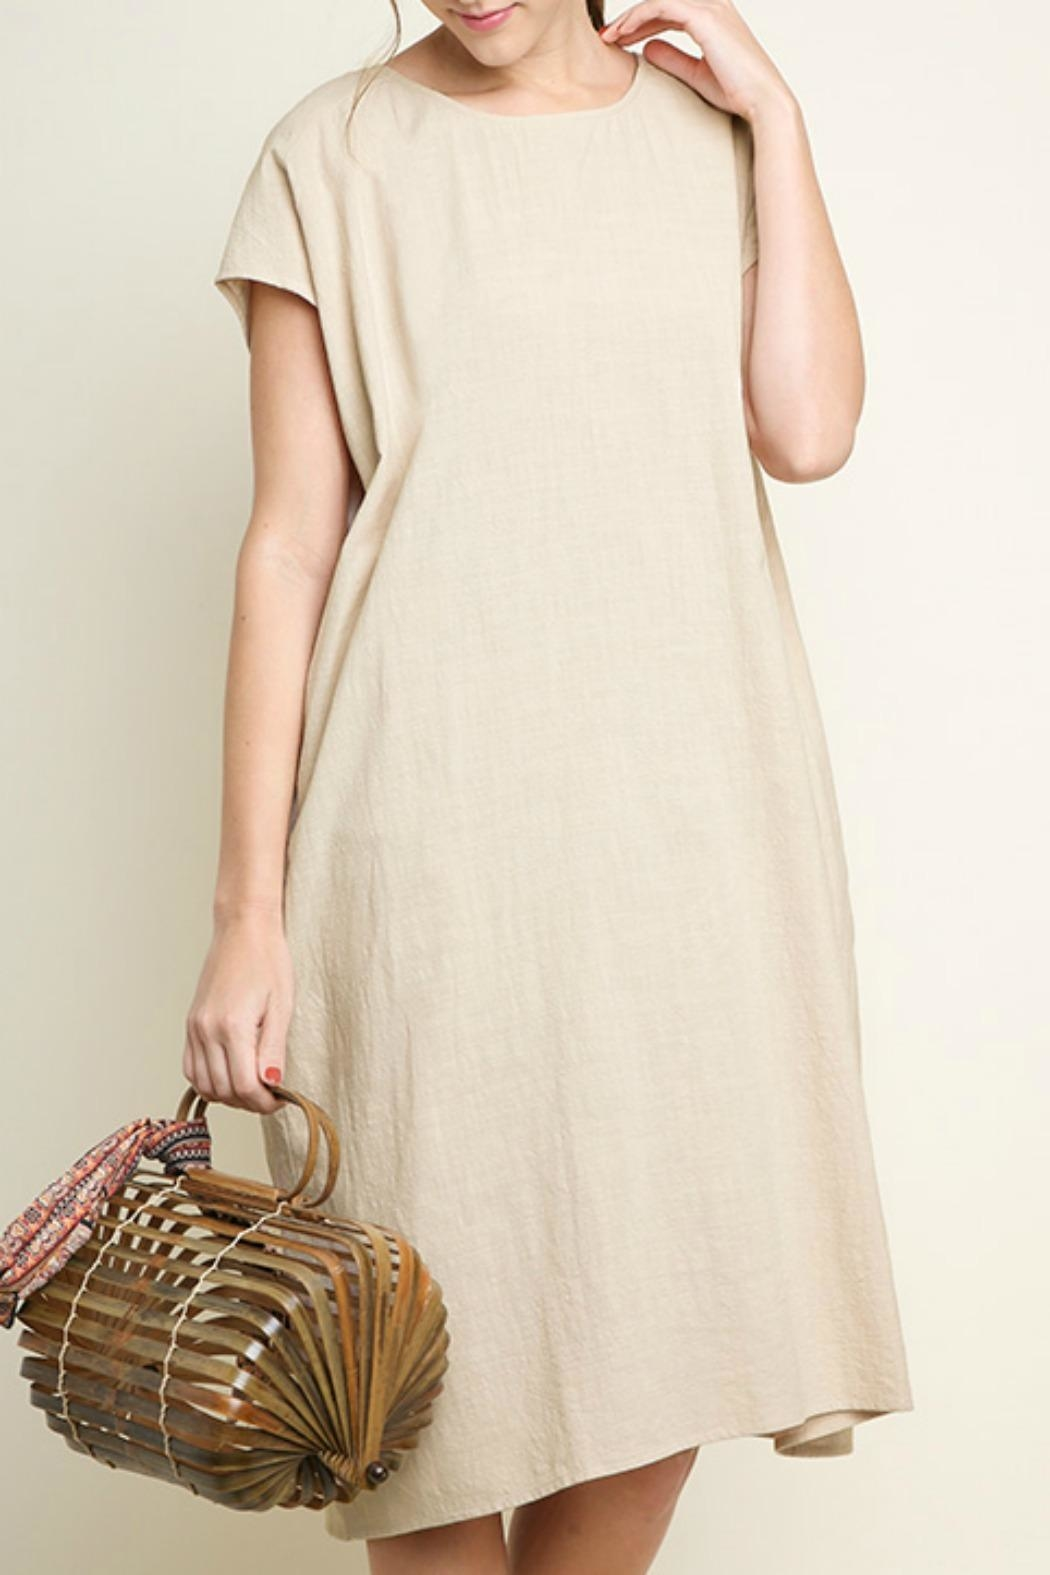 Umgee USA Cotton Pocket Dress - Main Image